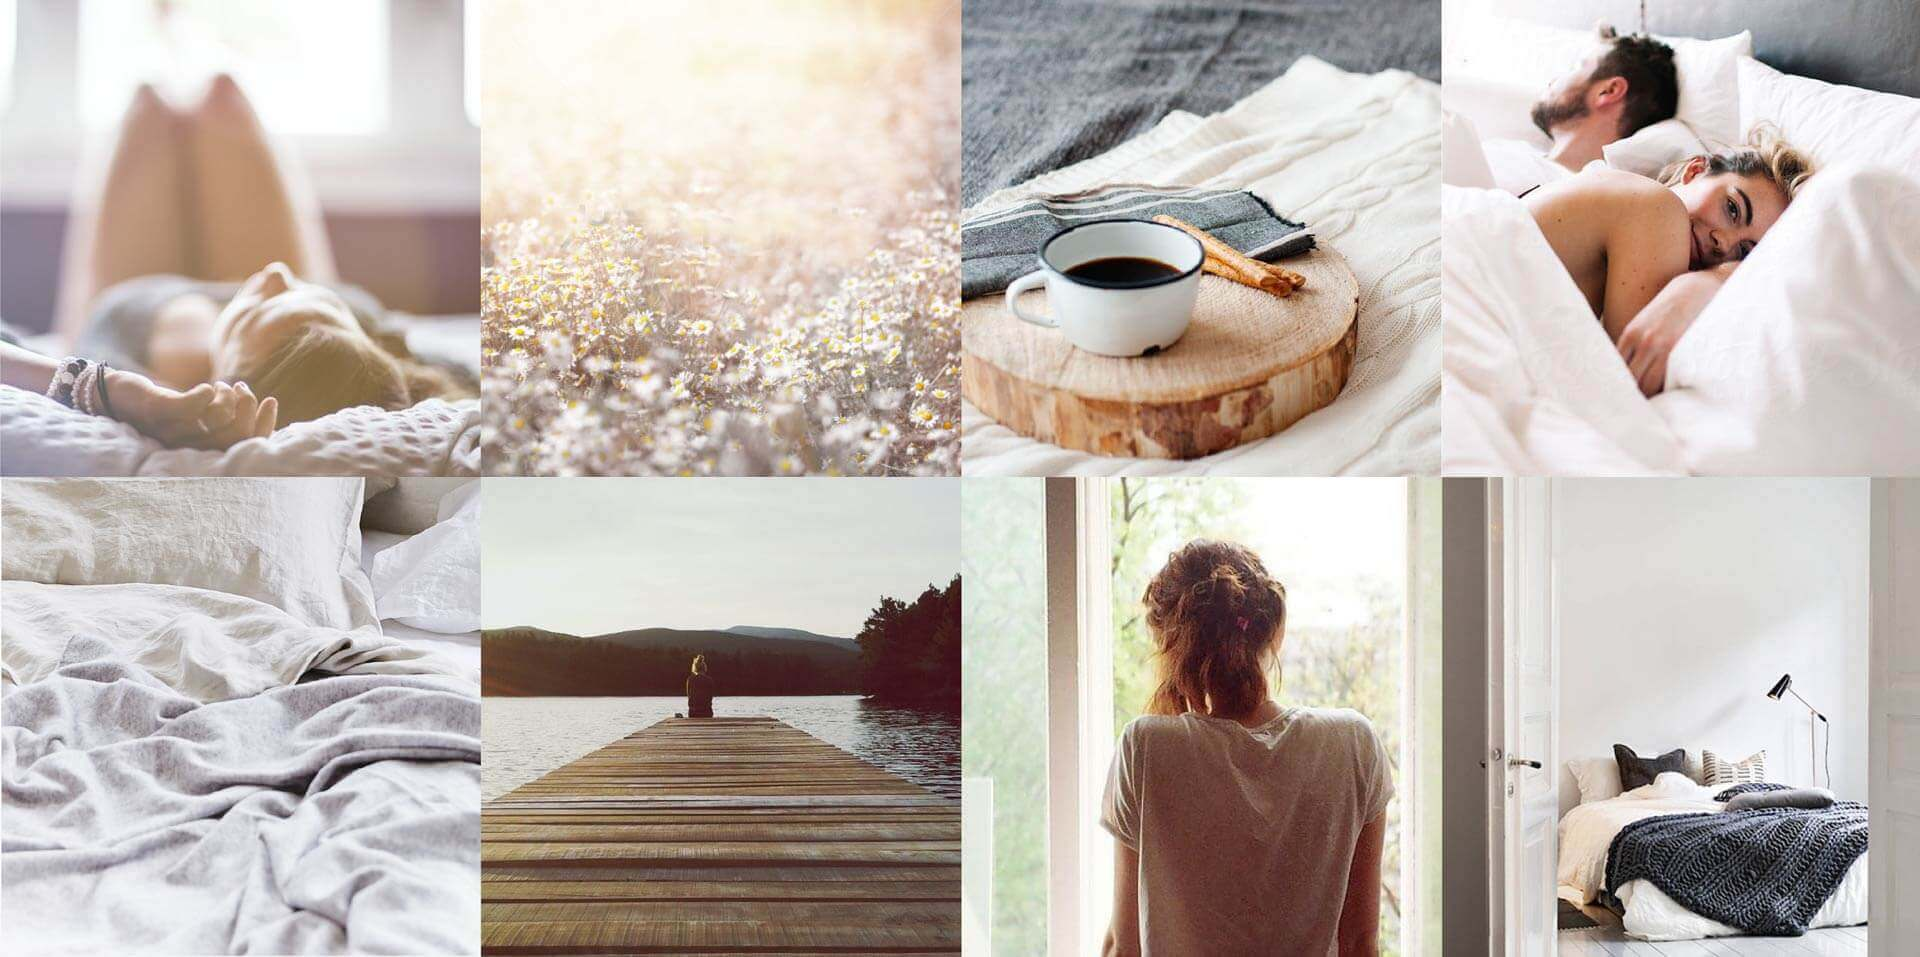 On Indigo Bay mood board